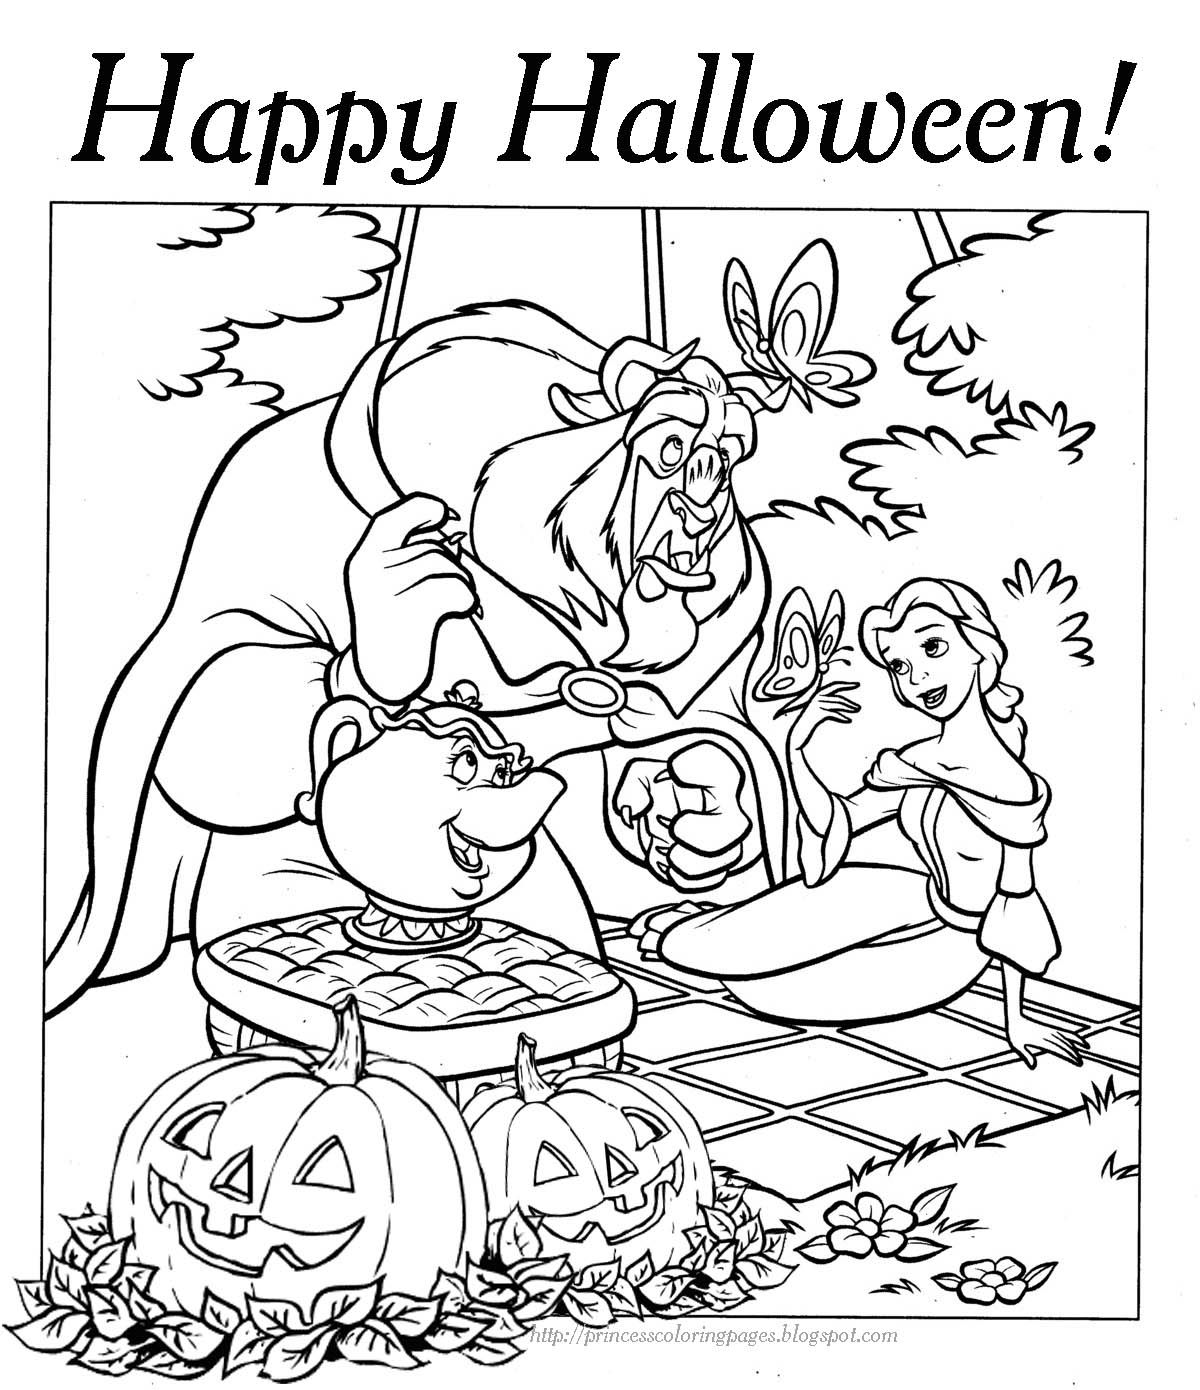 Halloween Coloring Pages HALLOWEEN COLORING PAGE